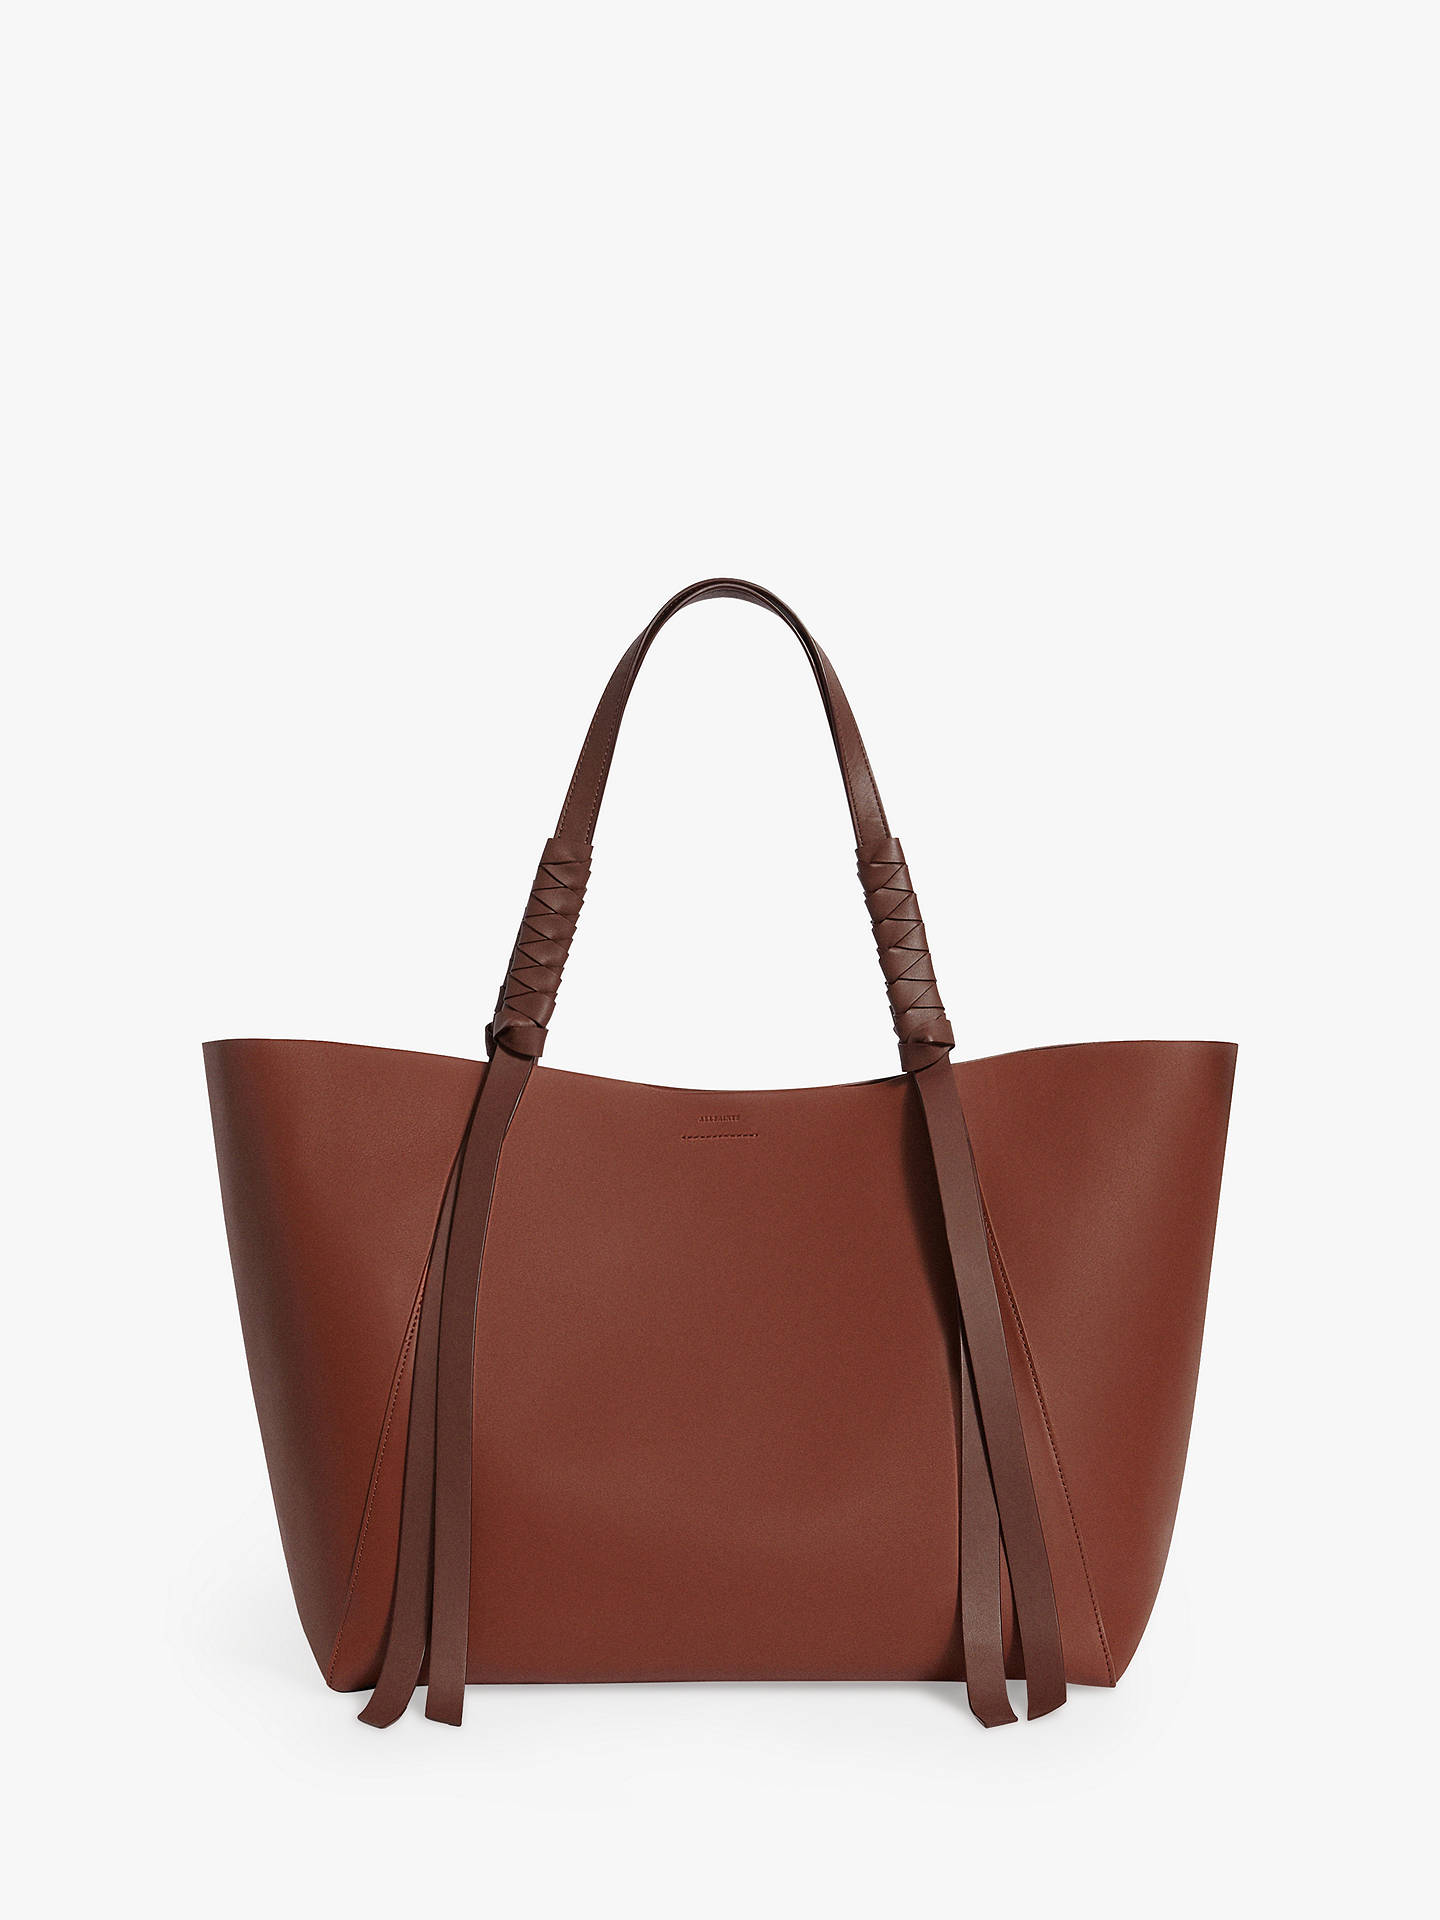 1971883d9fab BuyAllSaints Voltaire Leather Tote Bag Online at johnlewis.com ...